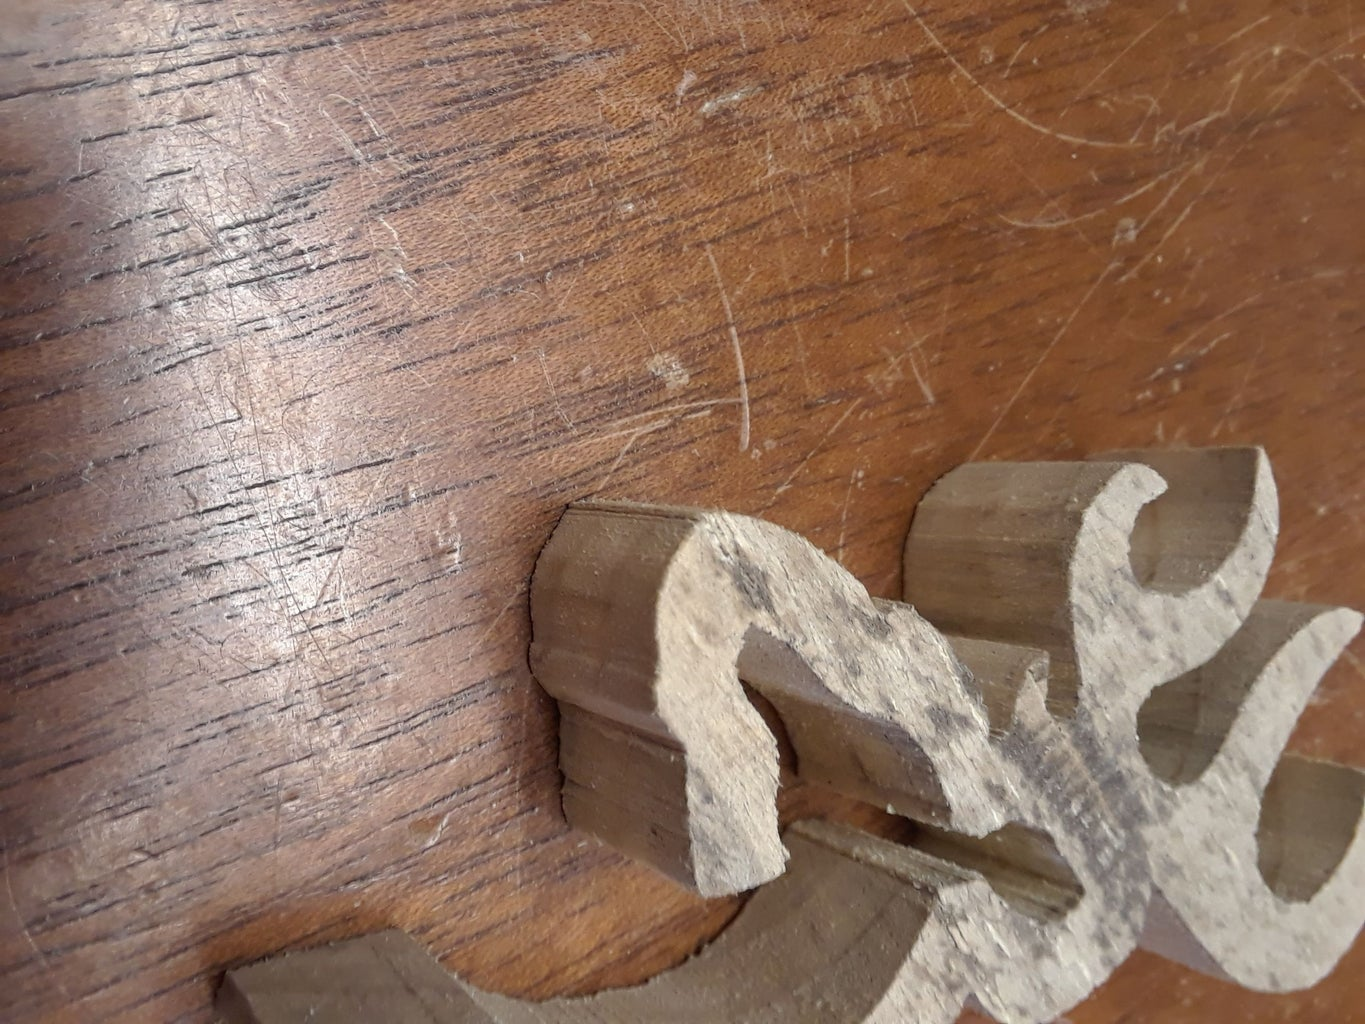 Sanding and Shaping